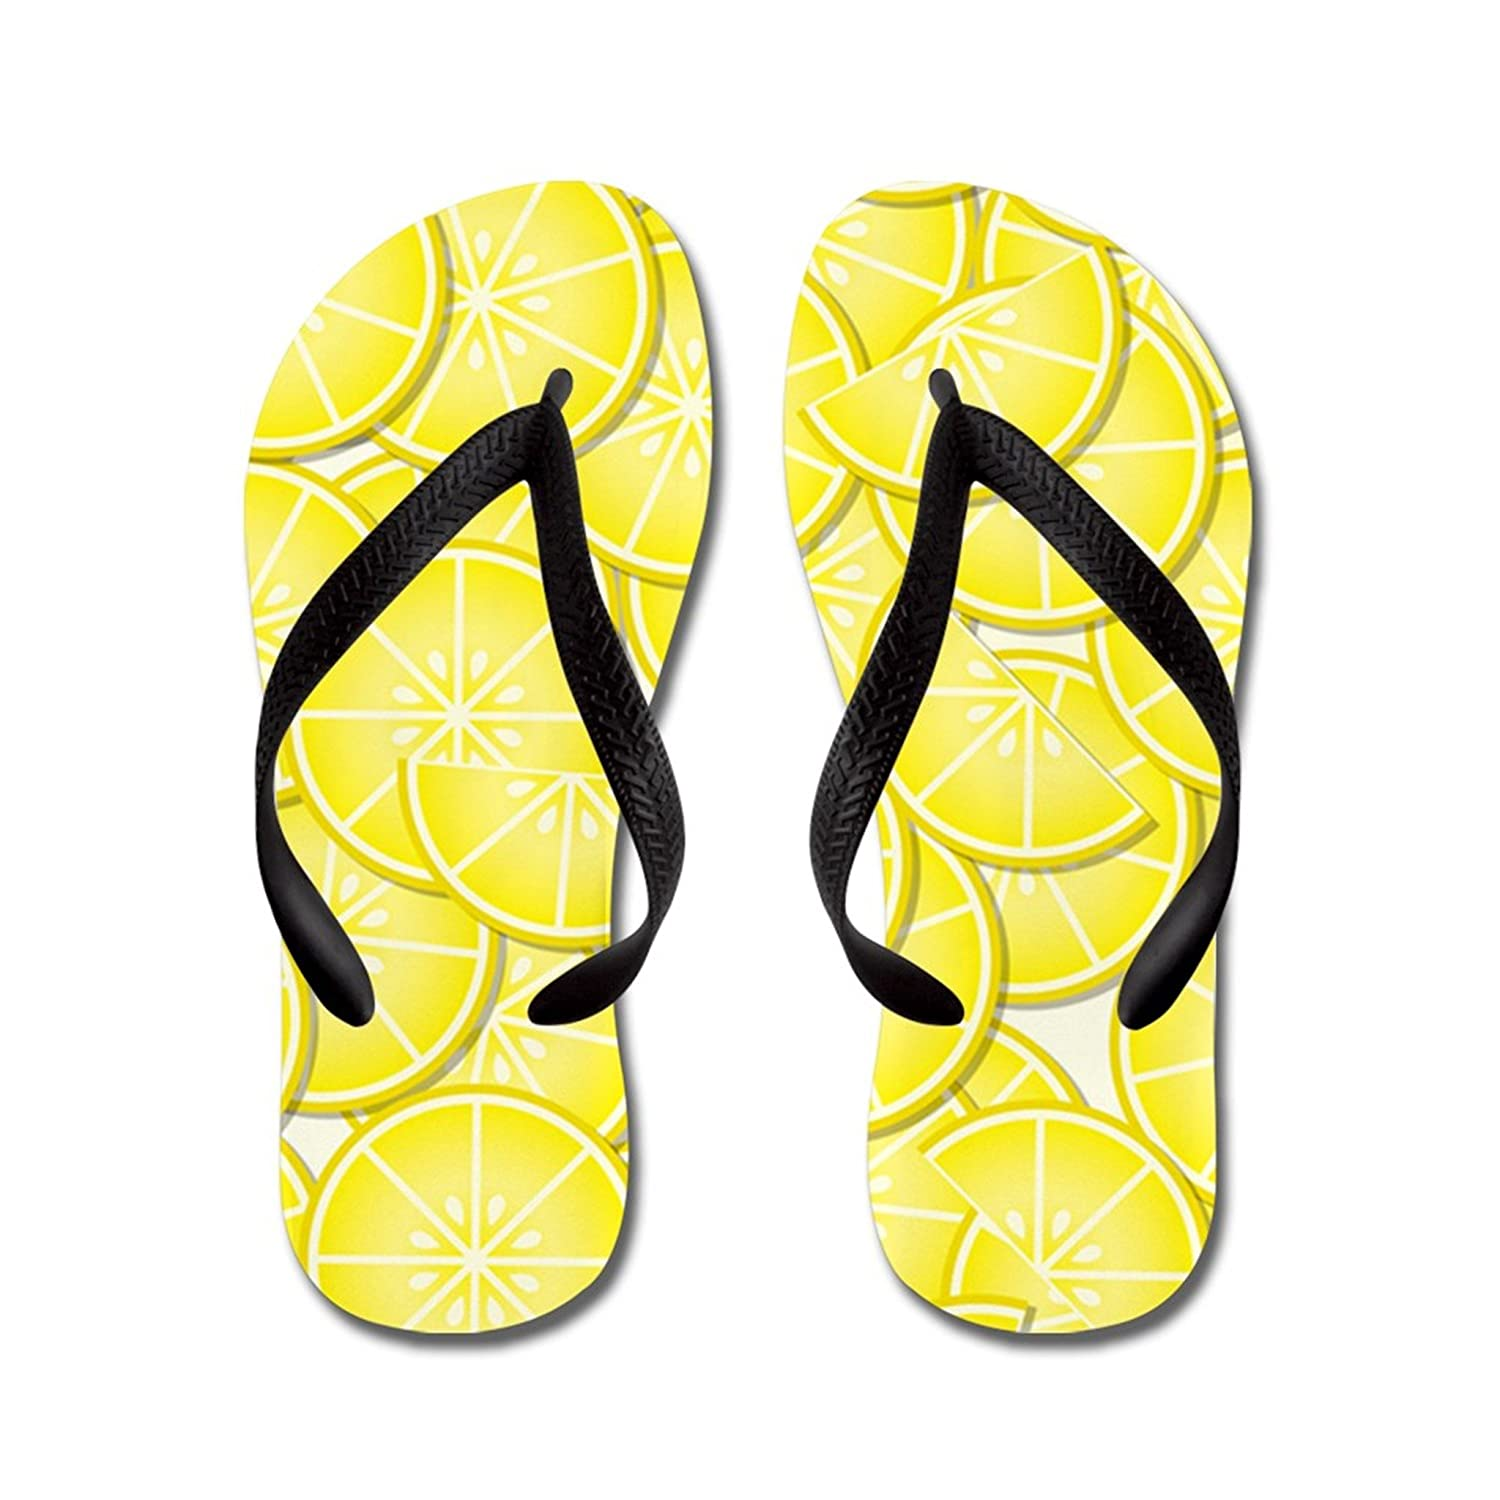 Lplpol Yellow Lemons Flip Flops for Kids and Adult Unisex Beach Sandals Pool Shoes Party Slippers